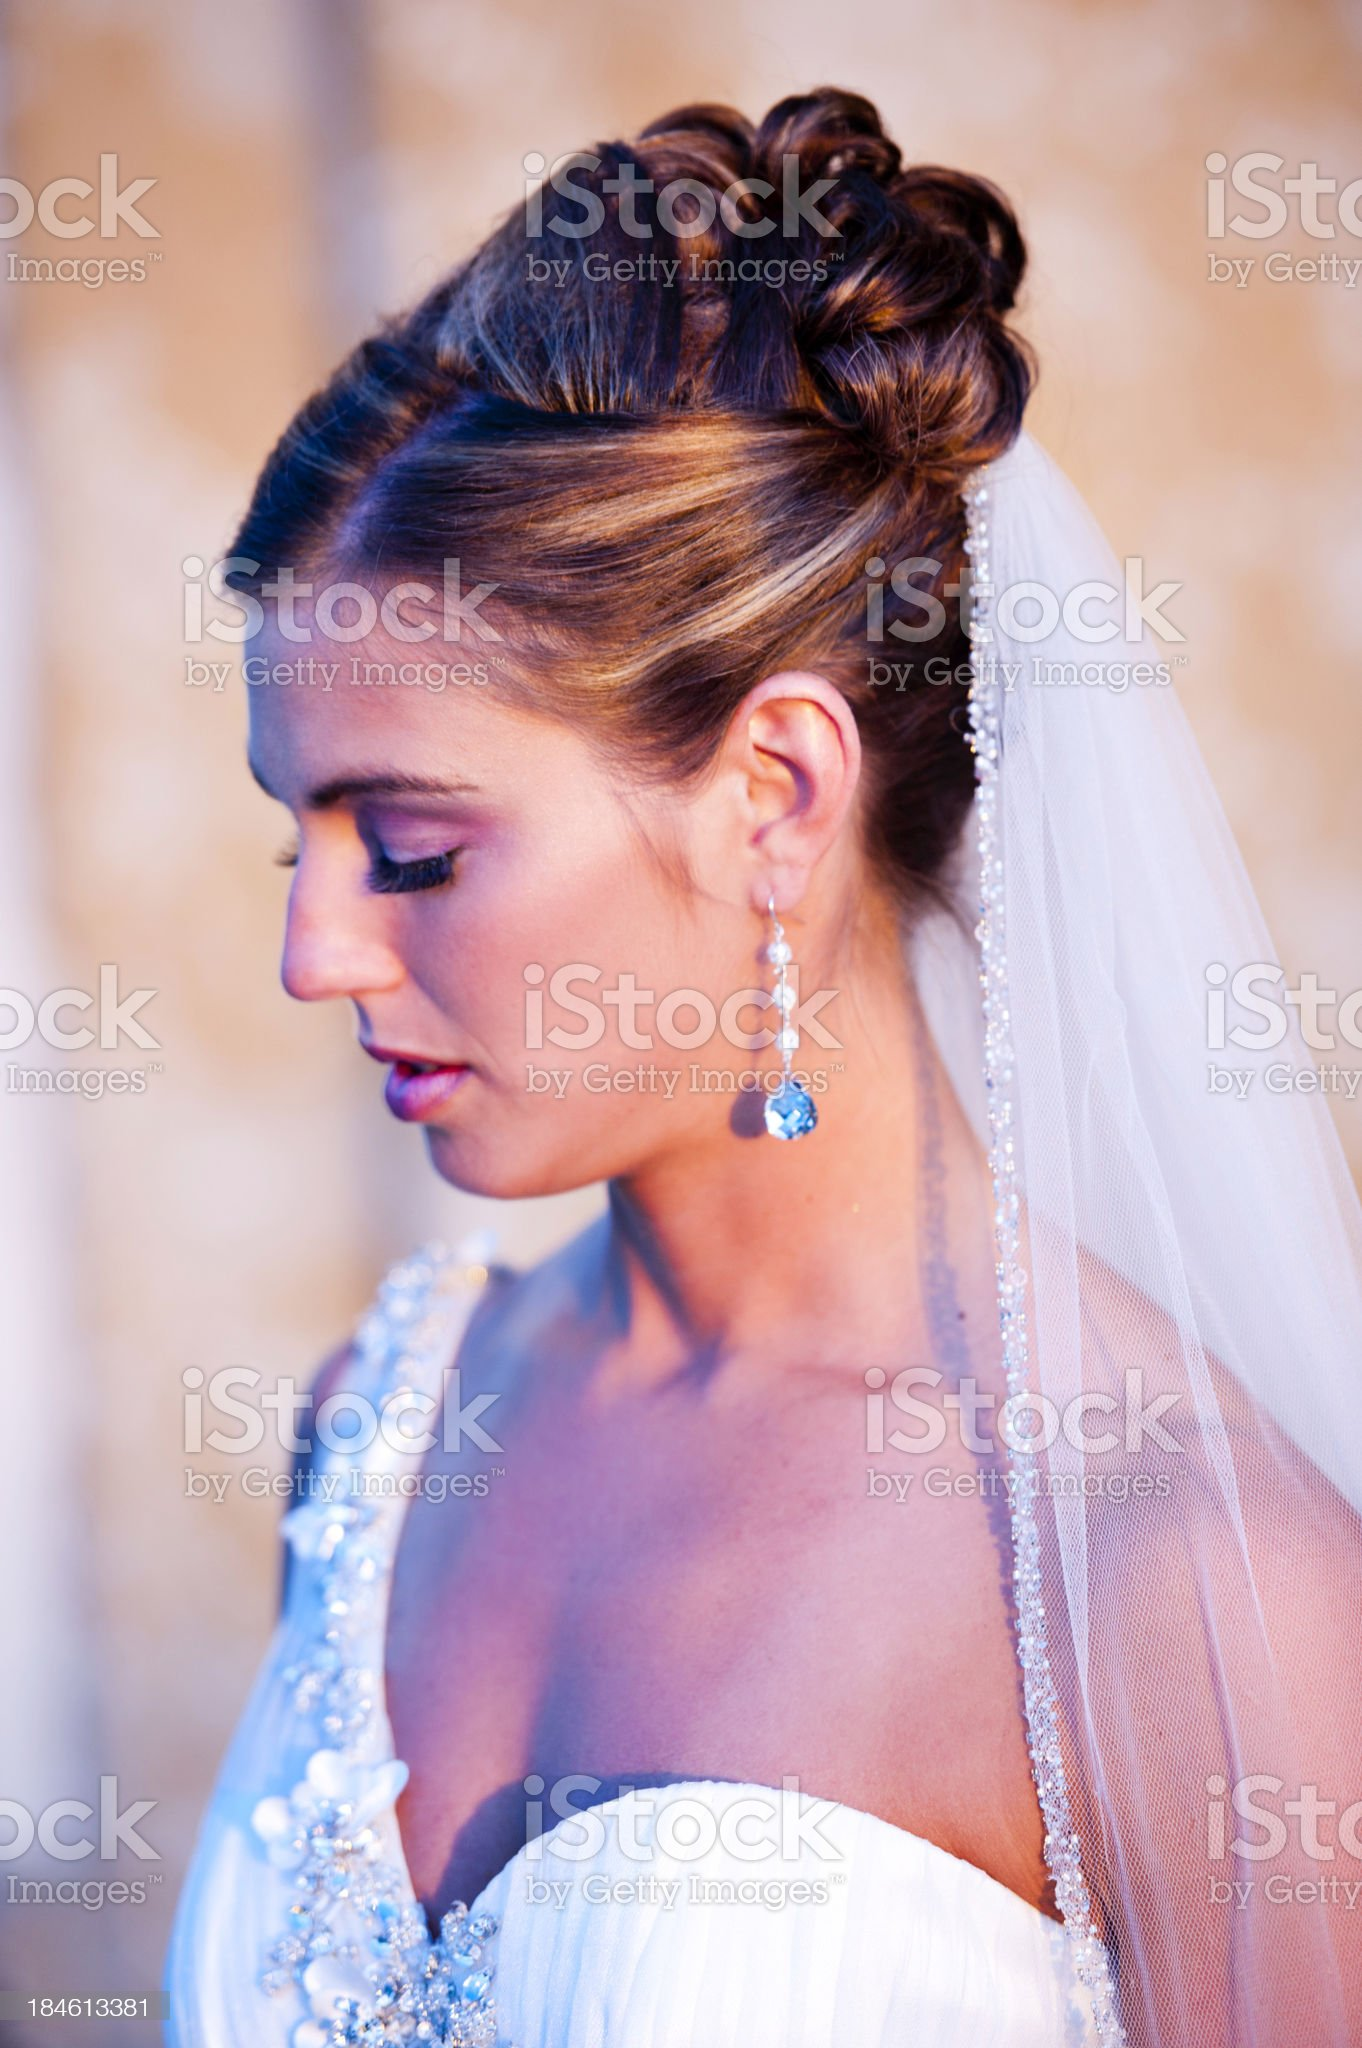 The Bride royalty-free stock photo